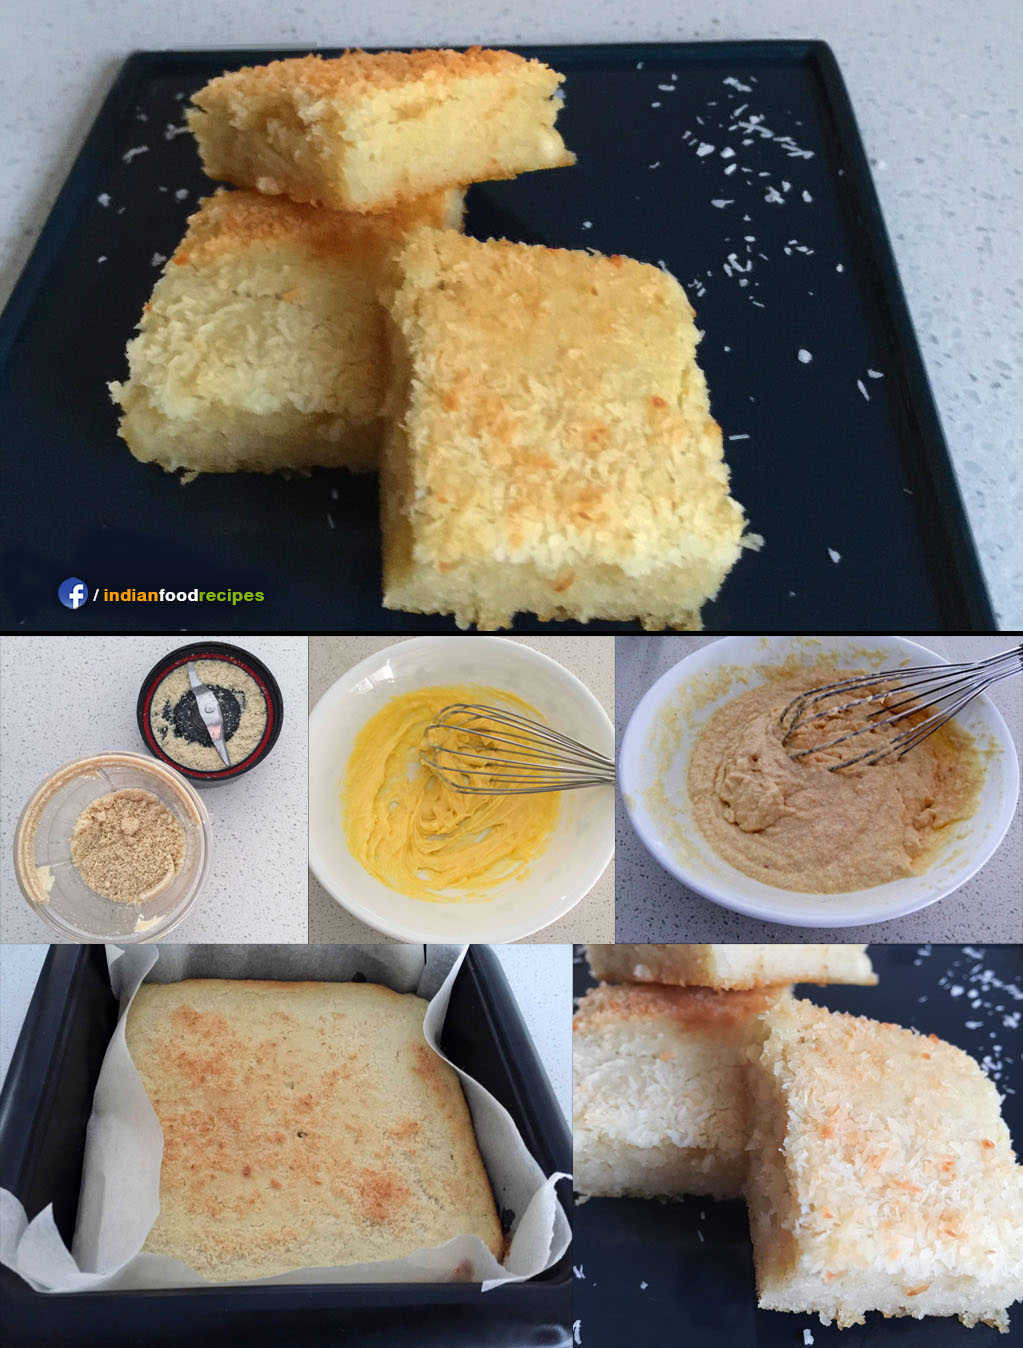 Almond Cashew Cake recipe step by step pictures